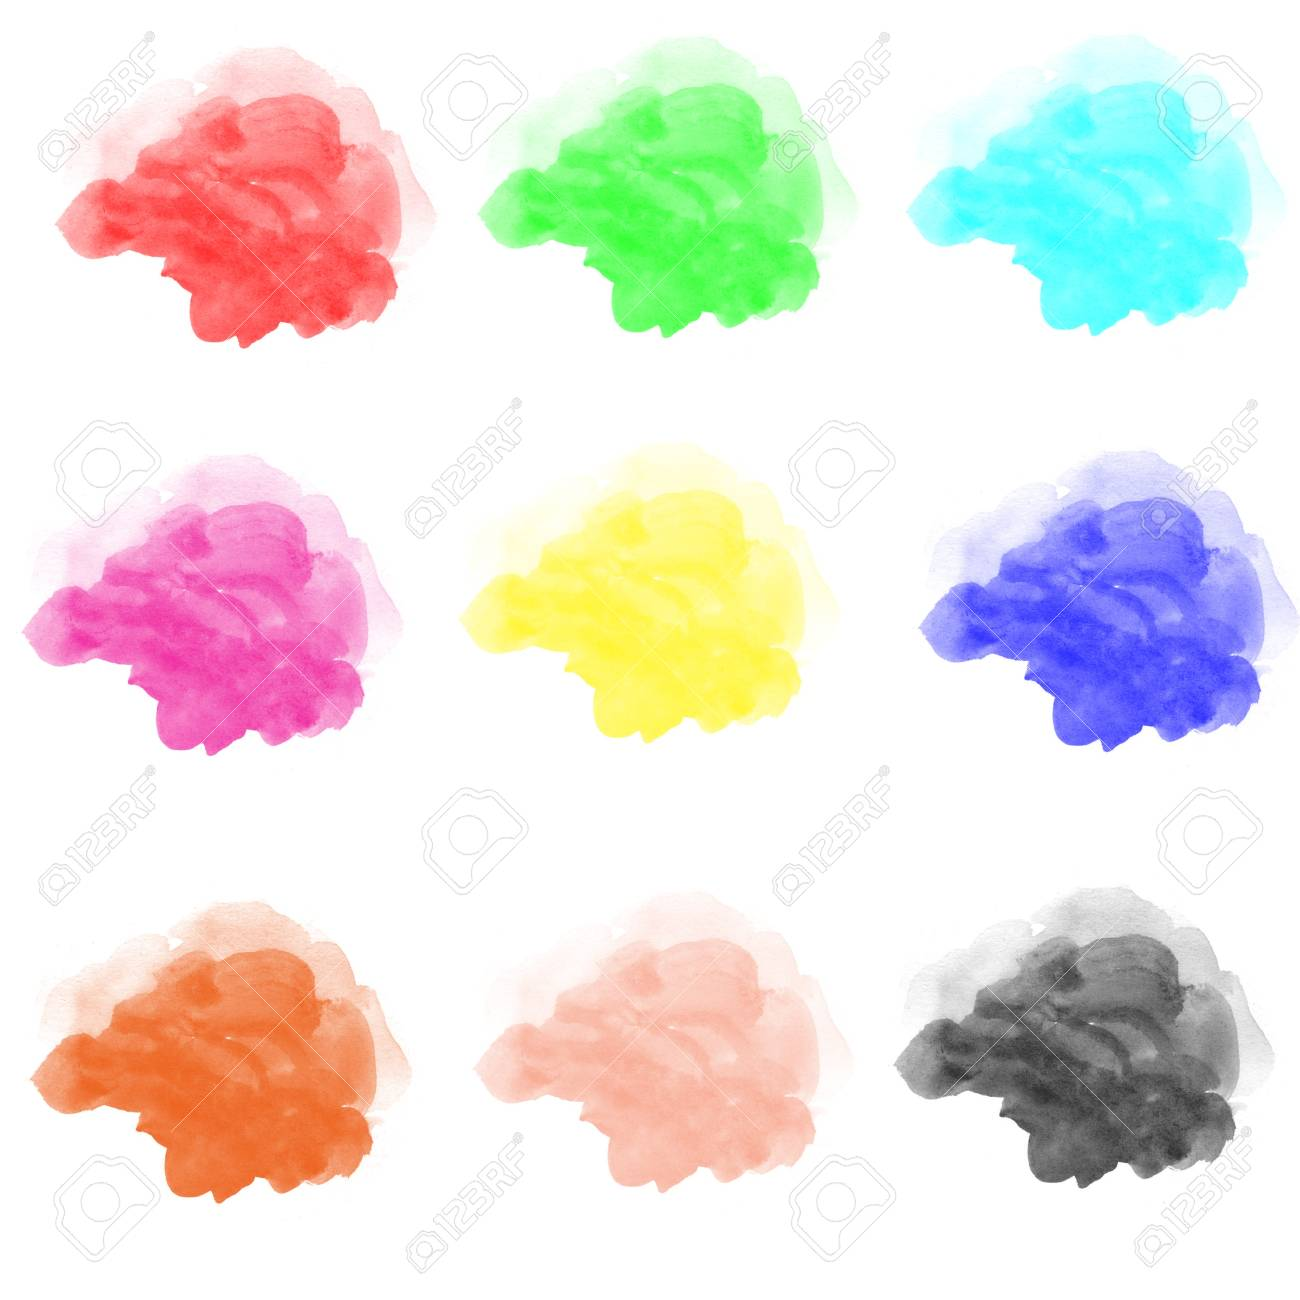 abstract watercolor on white background Stock Photo - 14326030